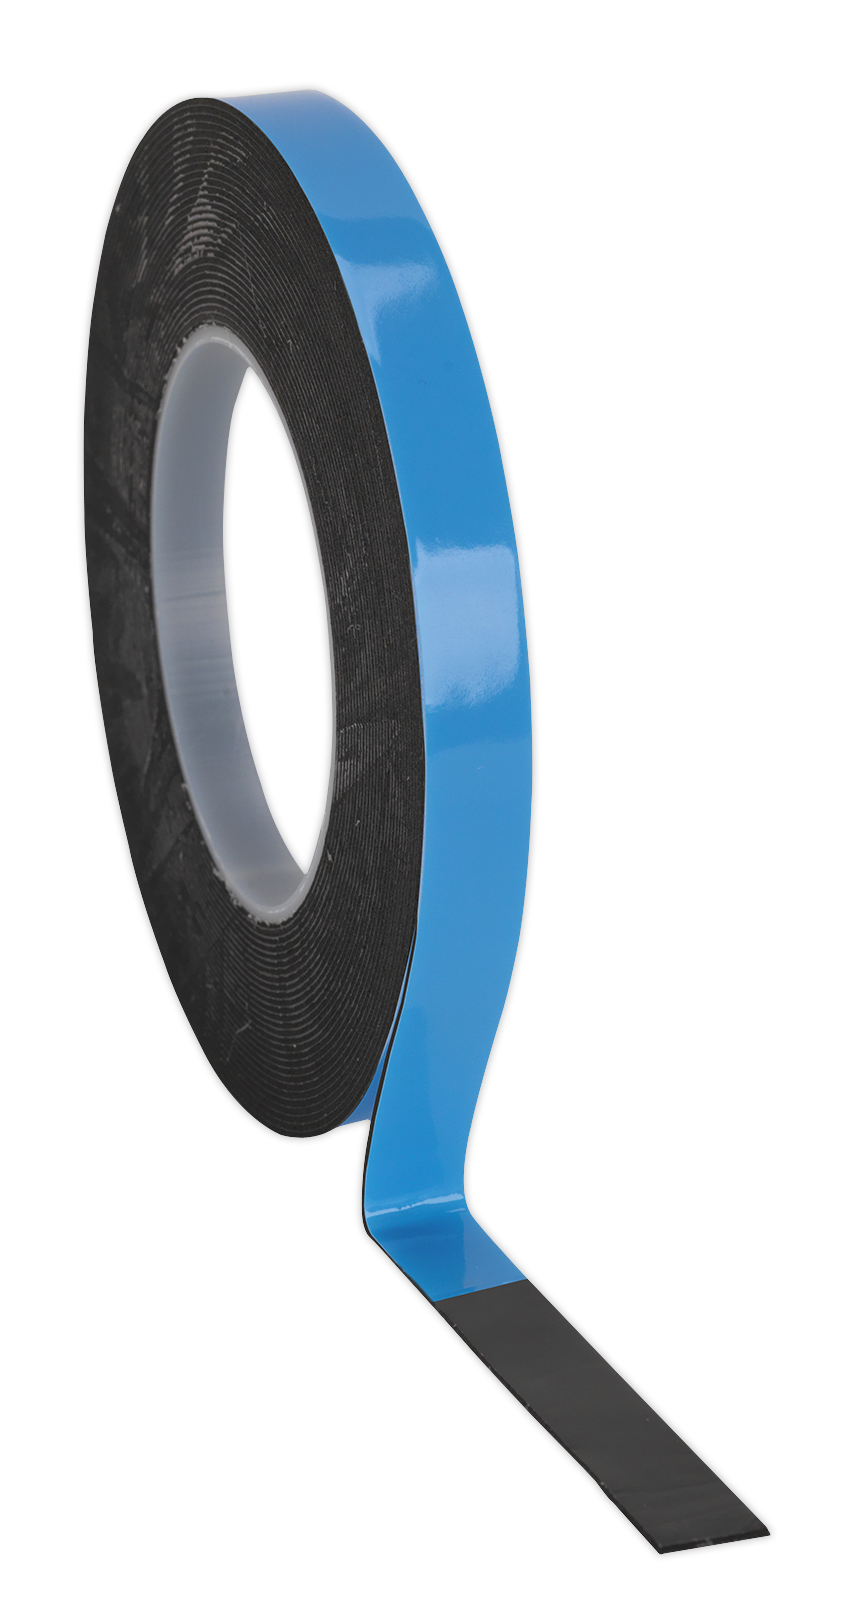 Dstb125 Sealey Double Sided Adhesive Foam Tape 12mm X 5mtr